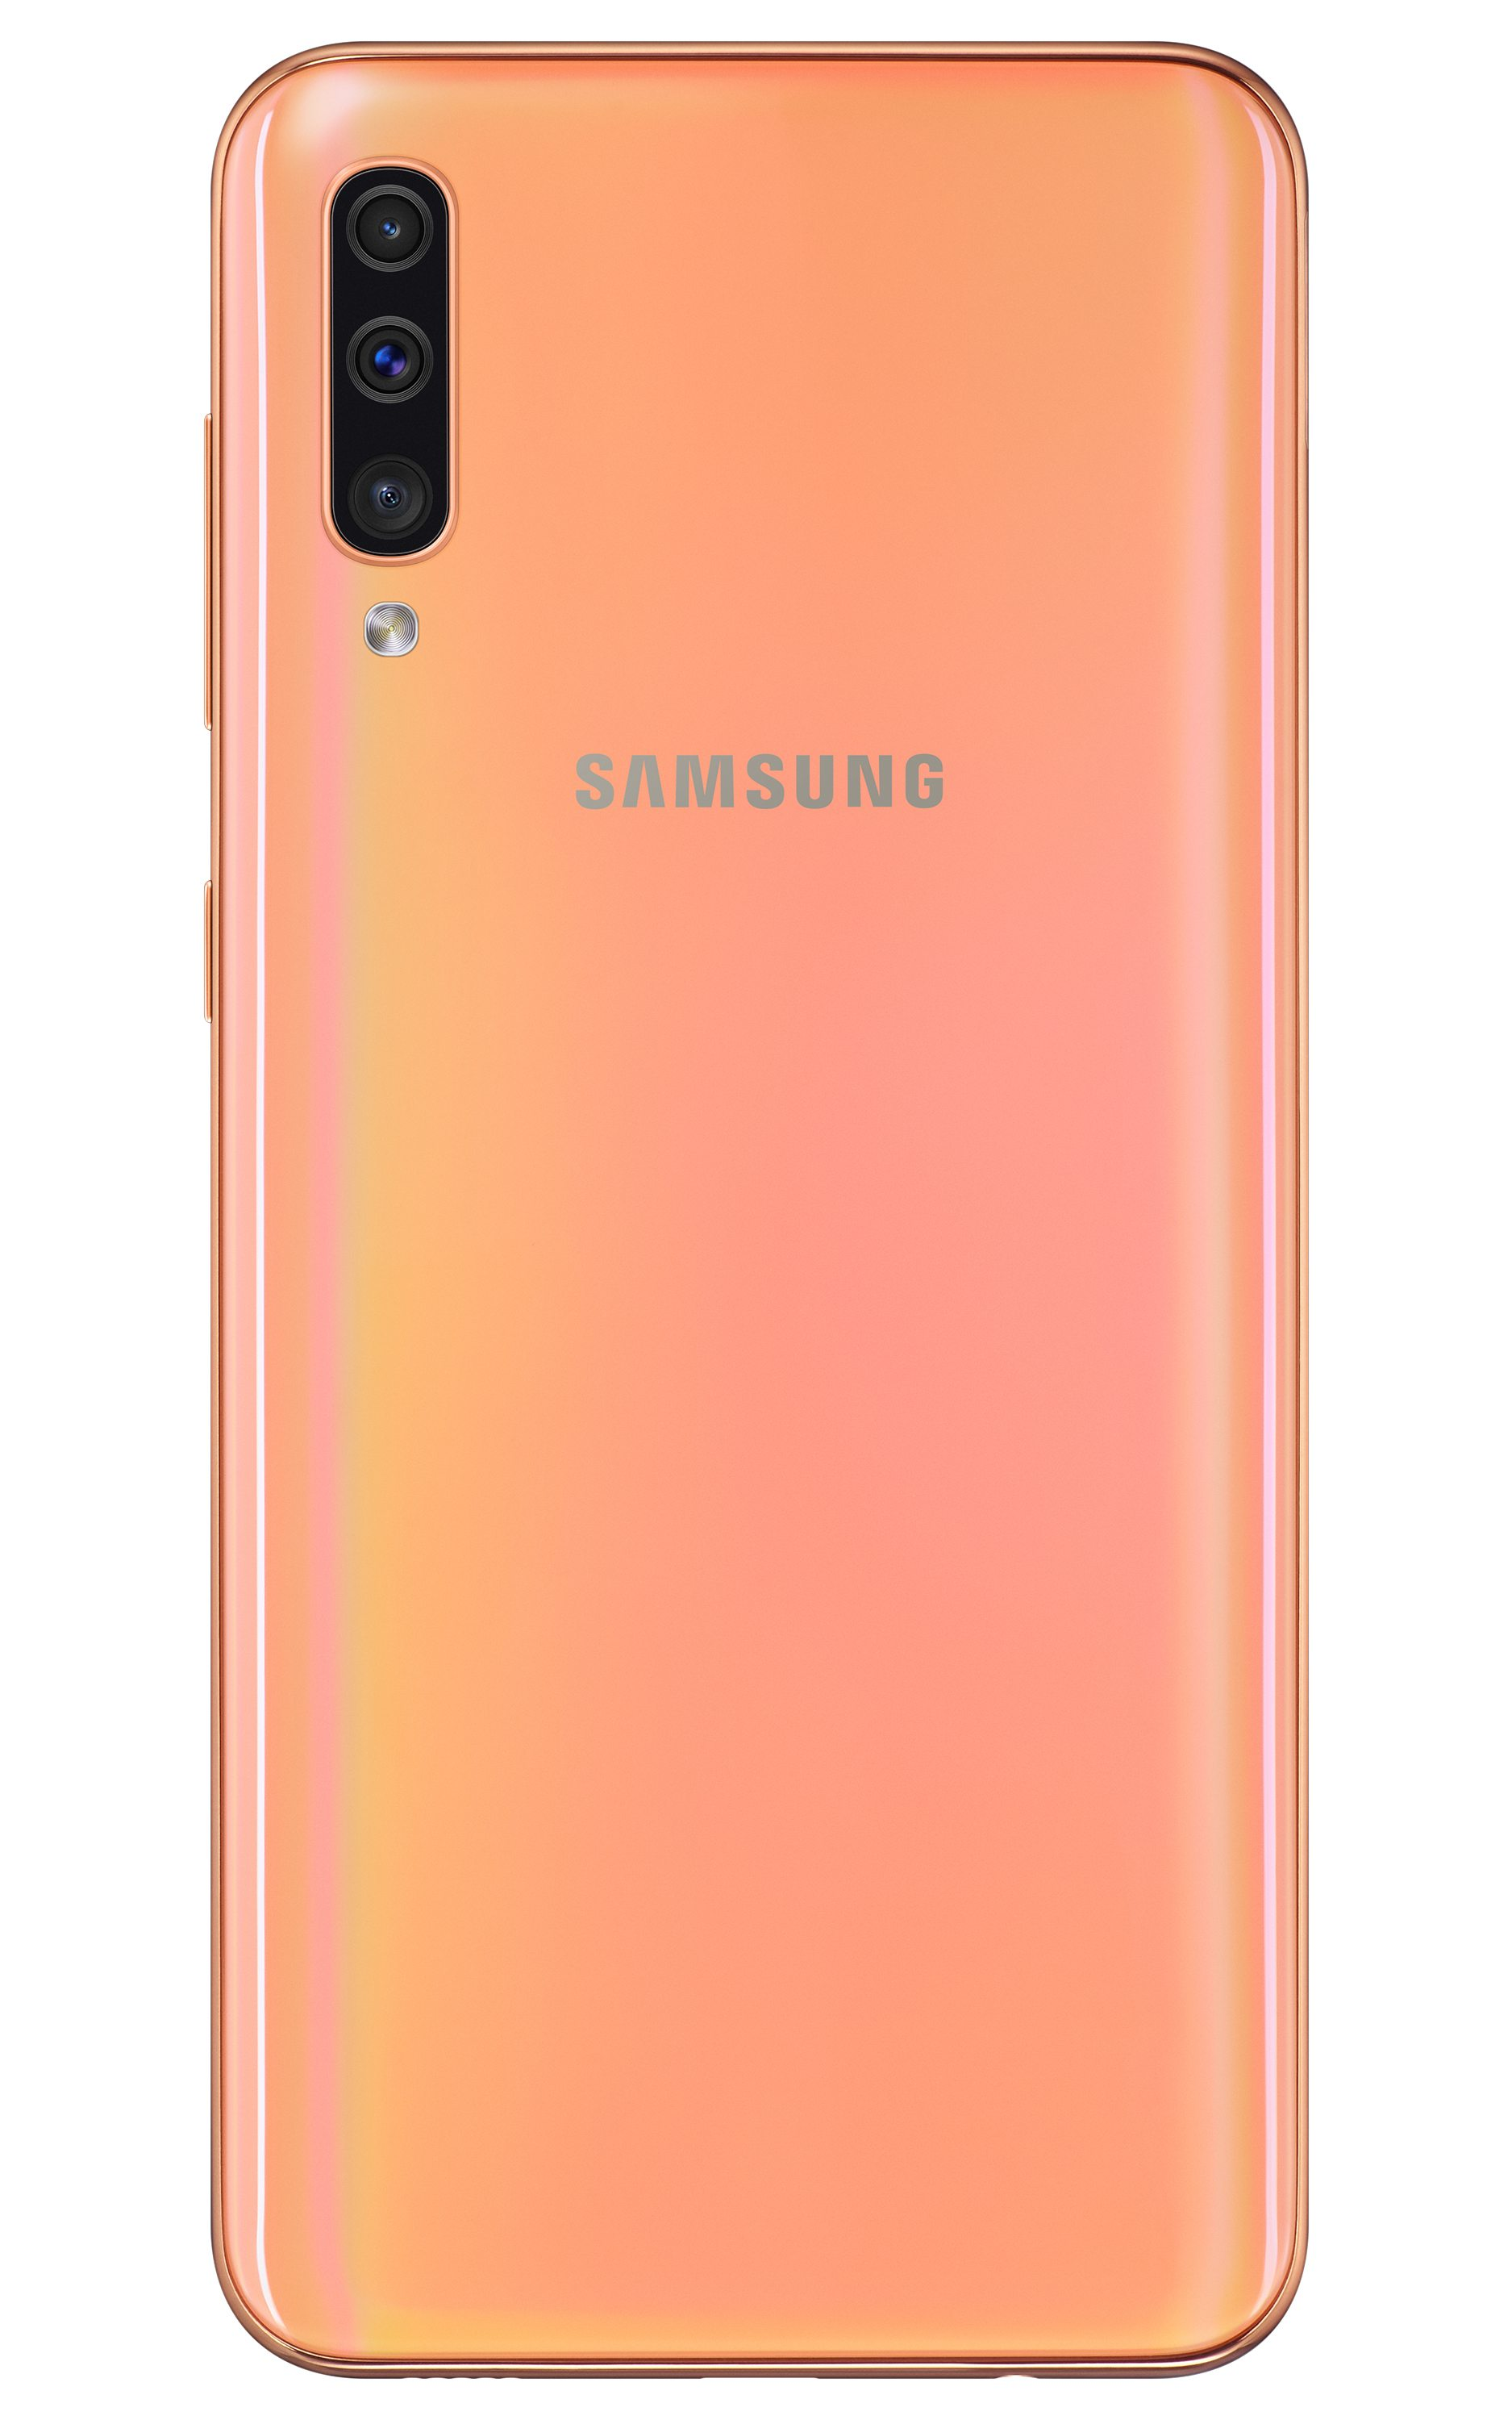 Samsung Galaxy A50 in Coral